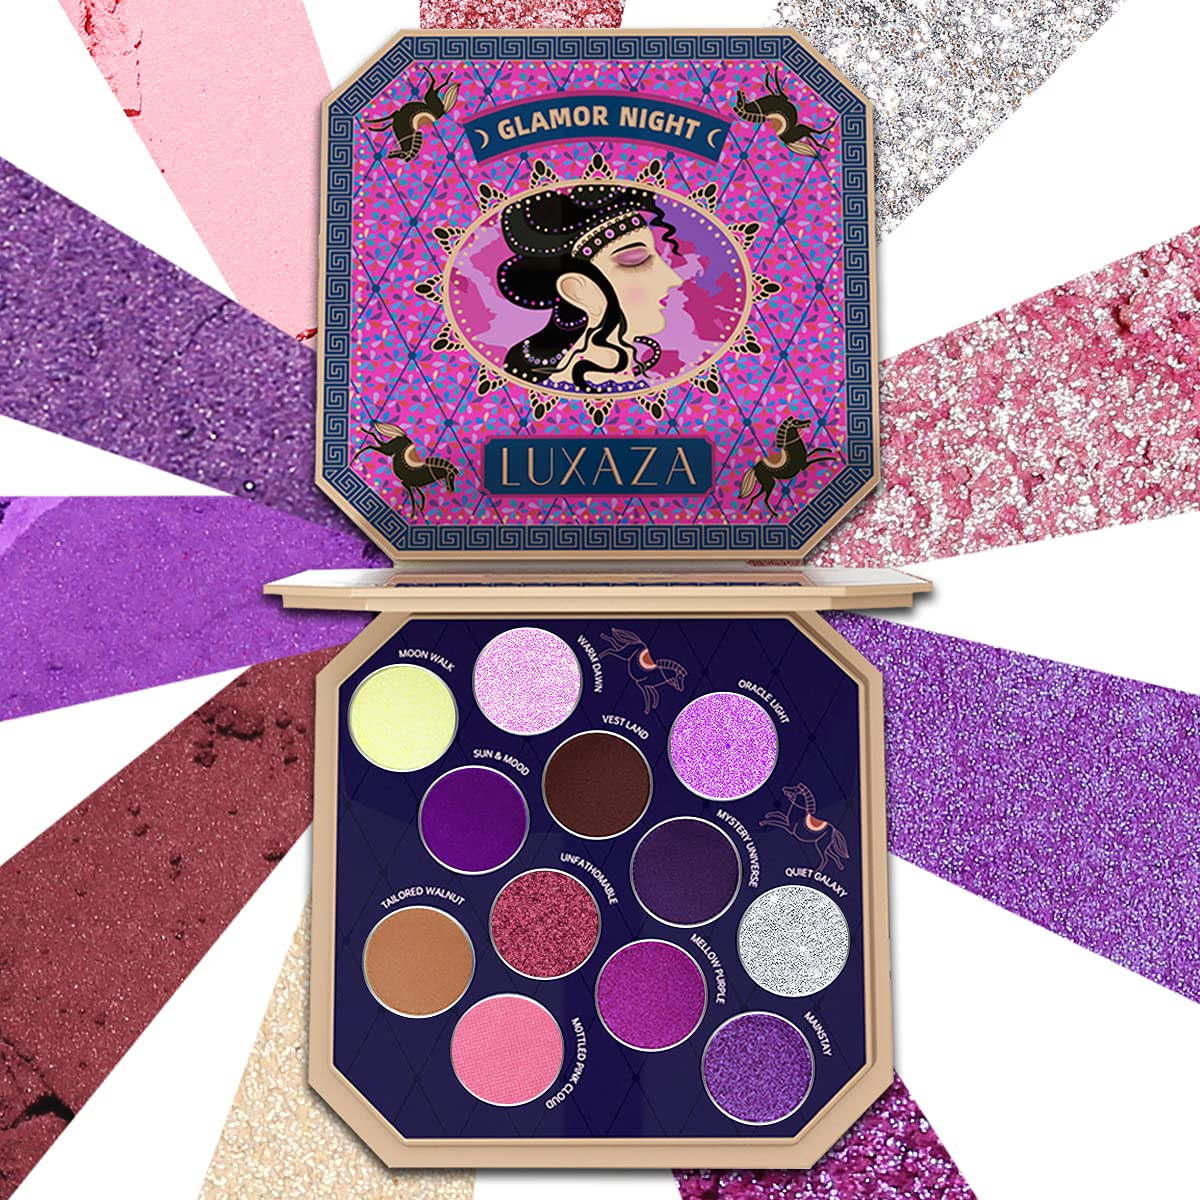 Large-scale sale LUXAZA Purple Eyeshadow Palette 12 Shimmer Glit Matte Colors At the price of surprise